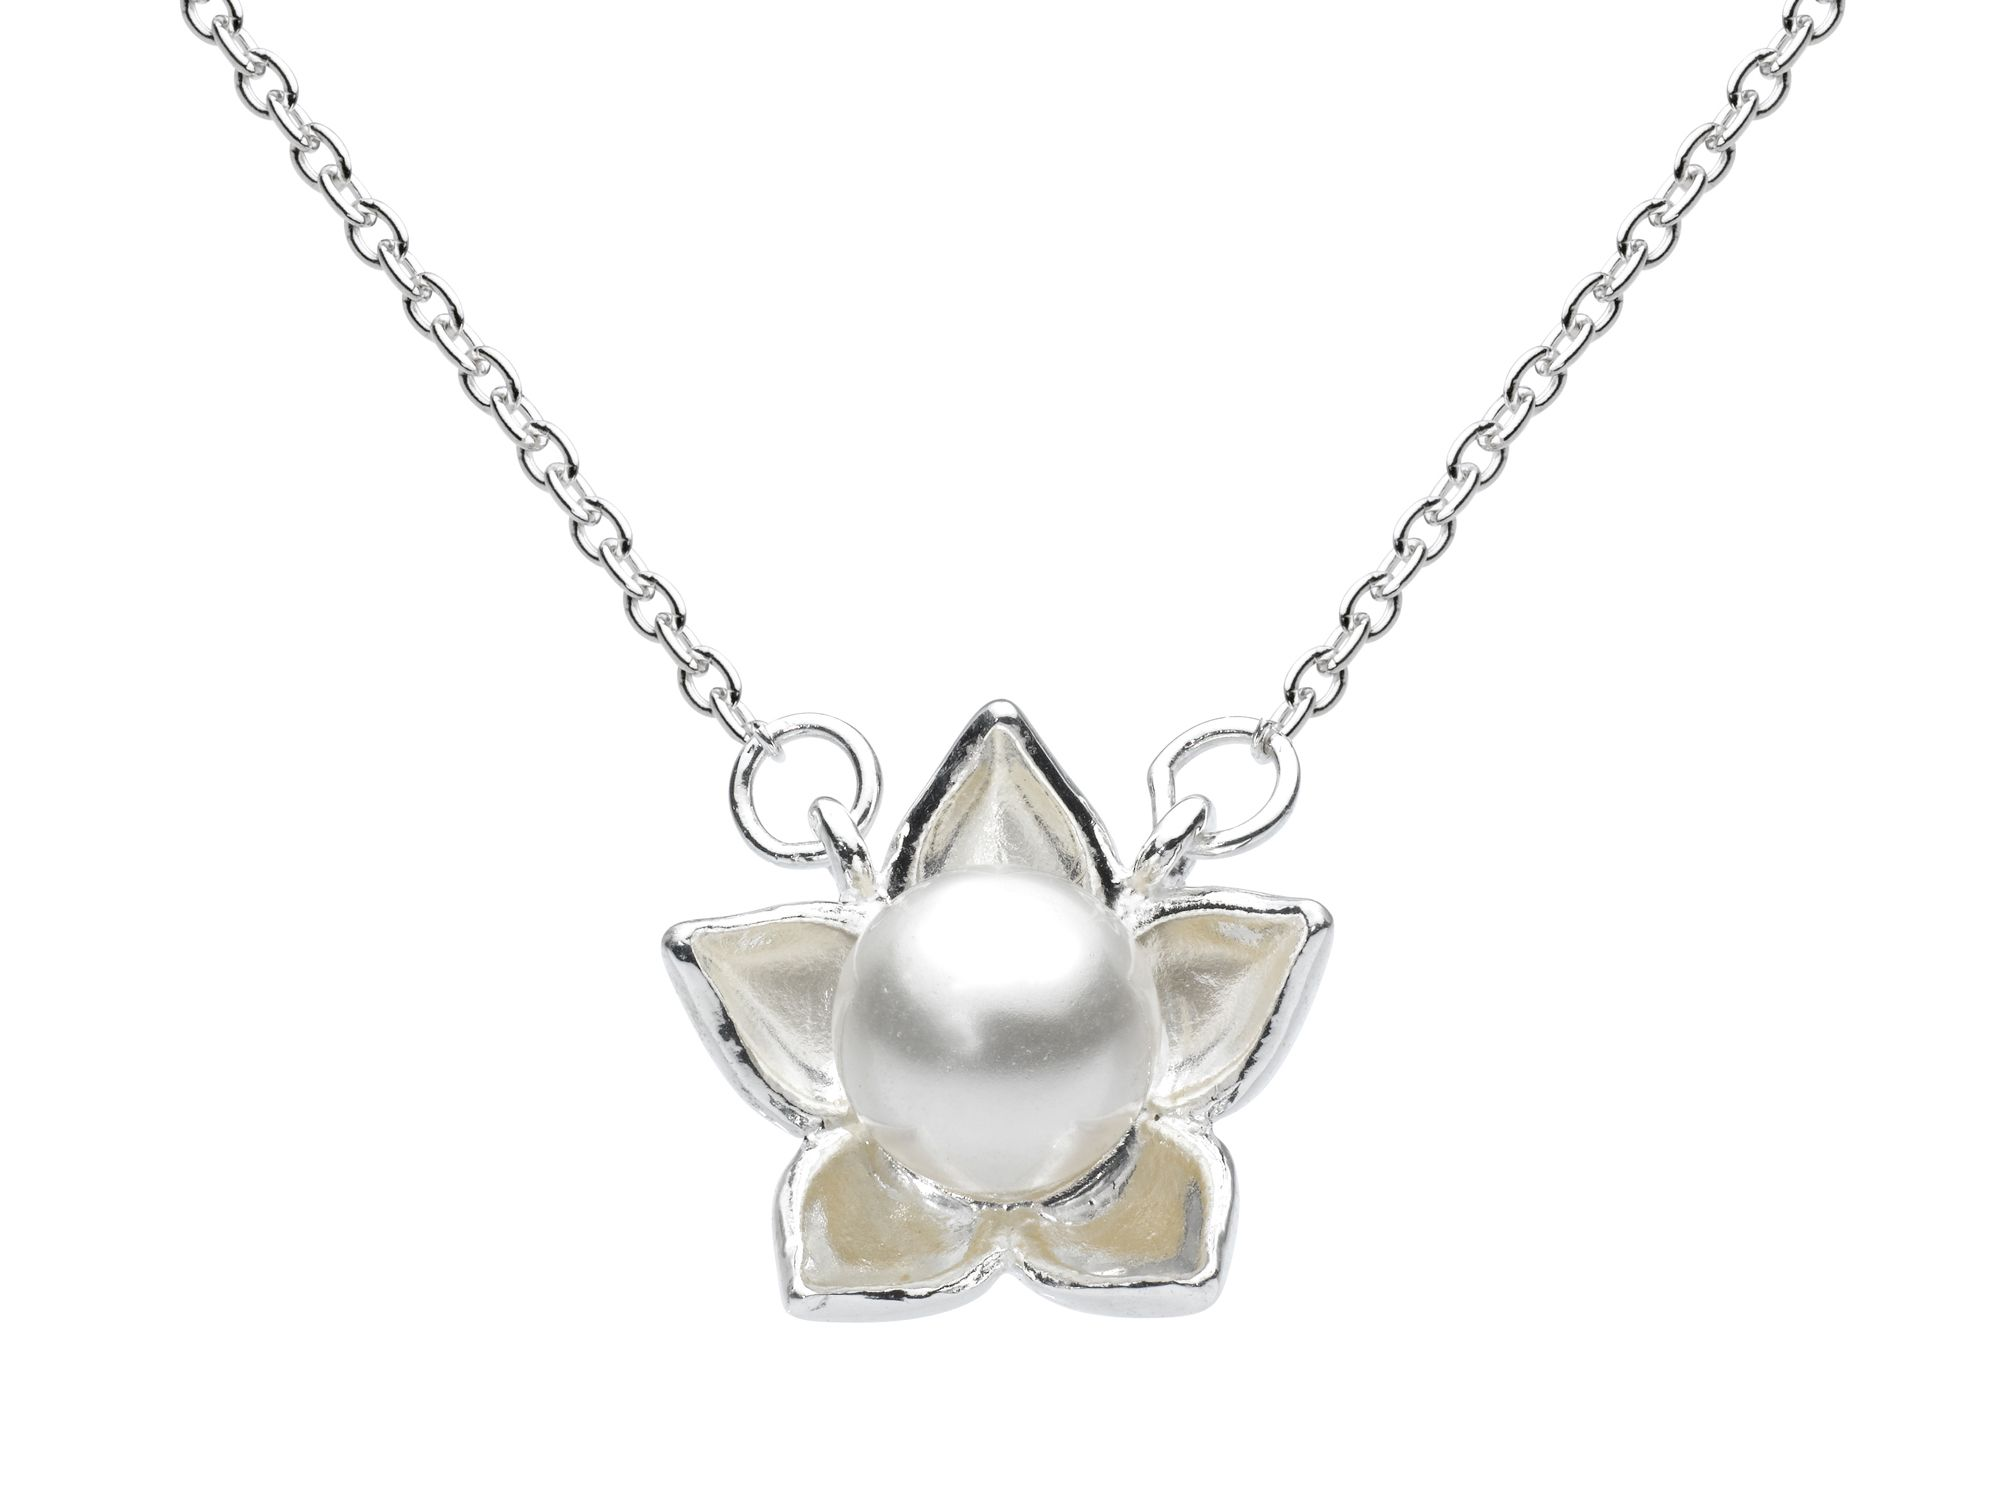 Sterling silver bloom pearl necklace 18